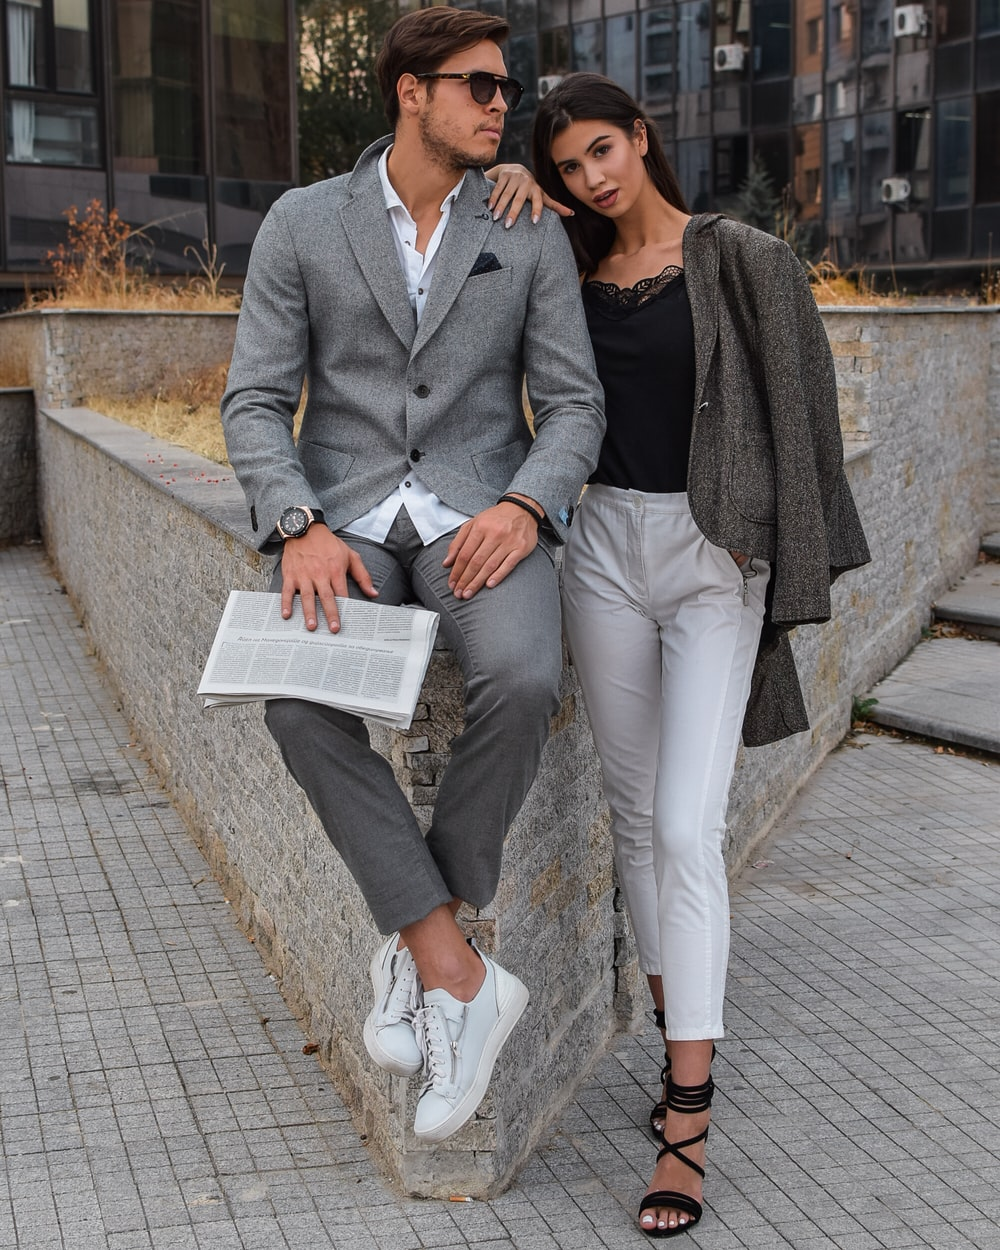 man and woman standing near wall